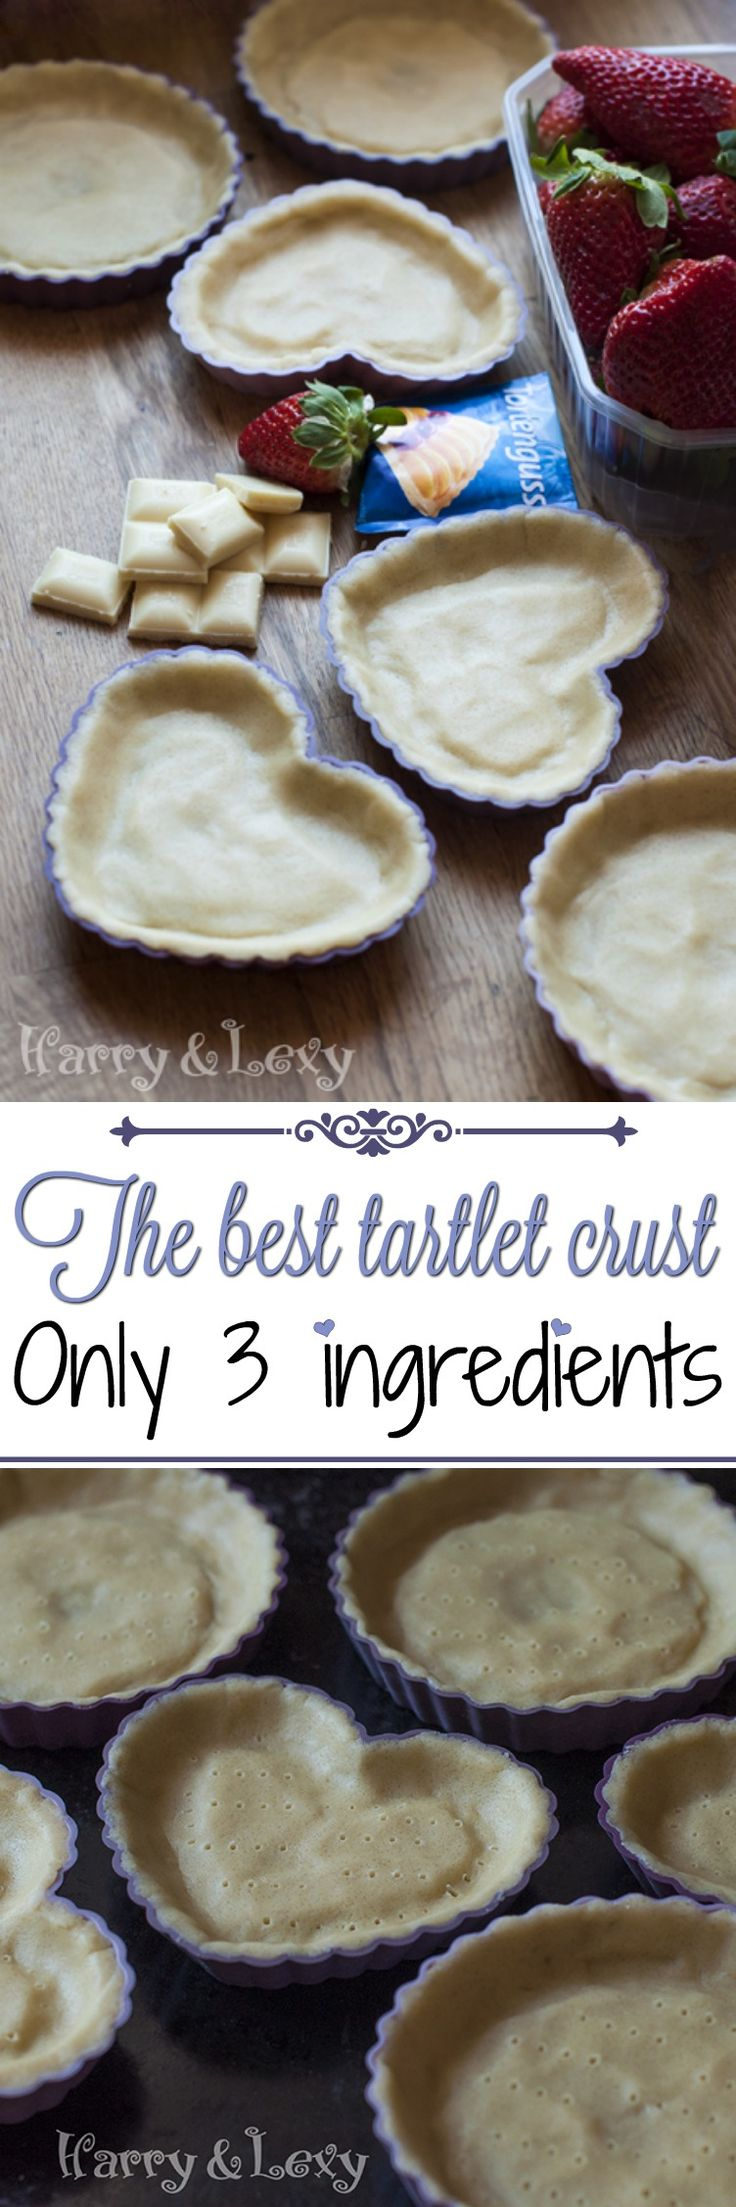 This is the best tartlet crust recipe I have tried. It contains only 3 ingredients, the baking time is 15 minutes and you can use your favourite filling.